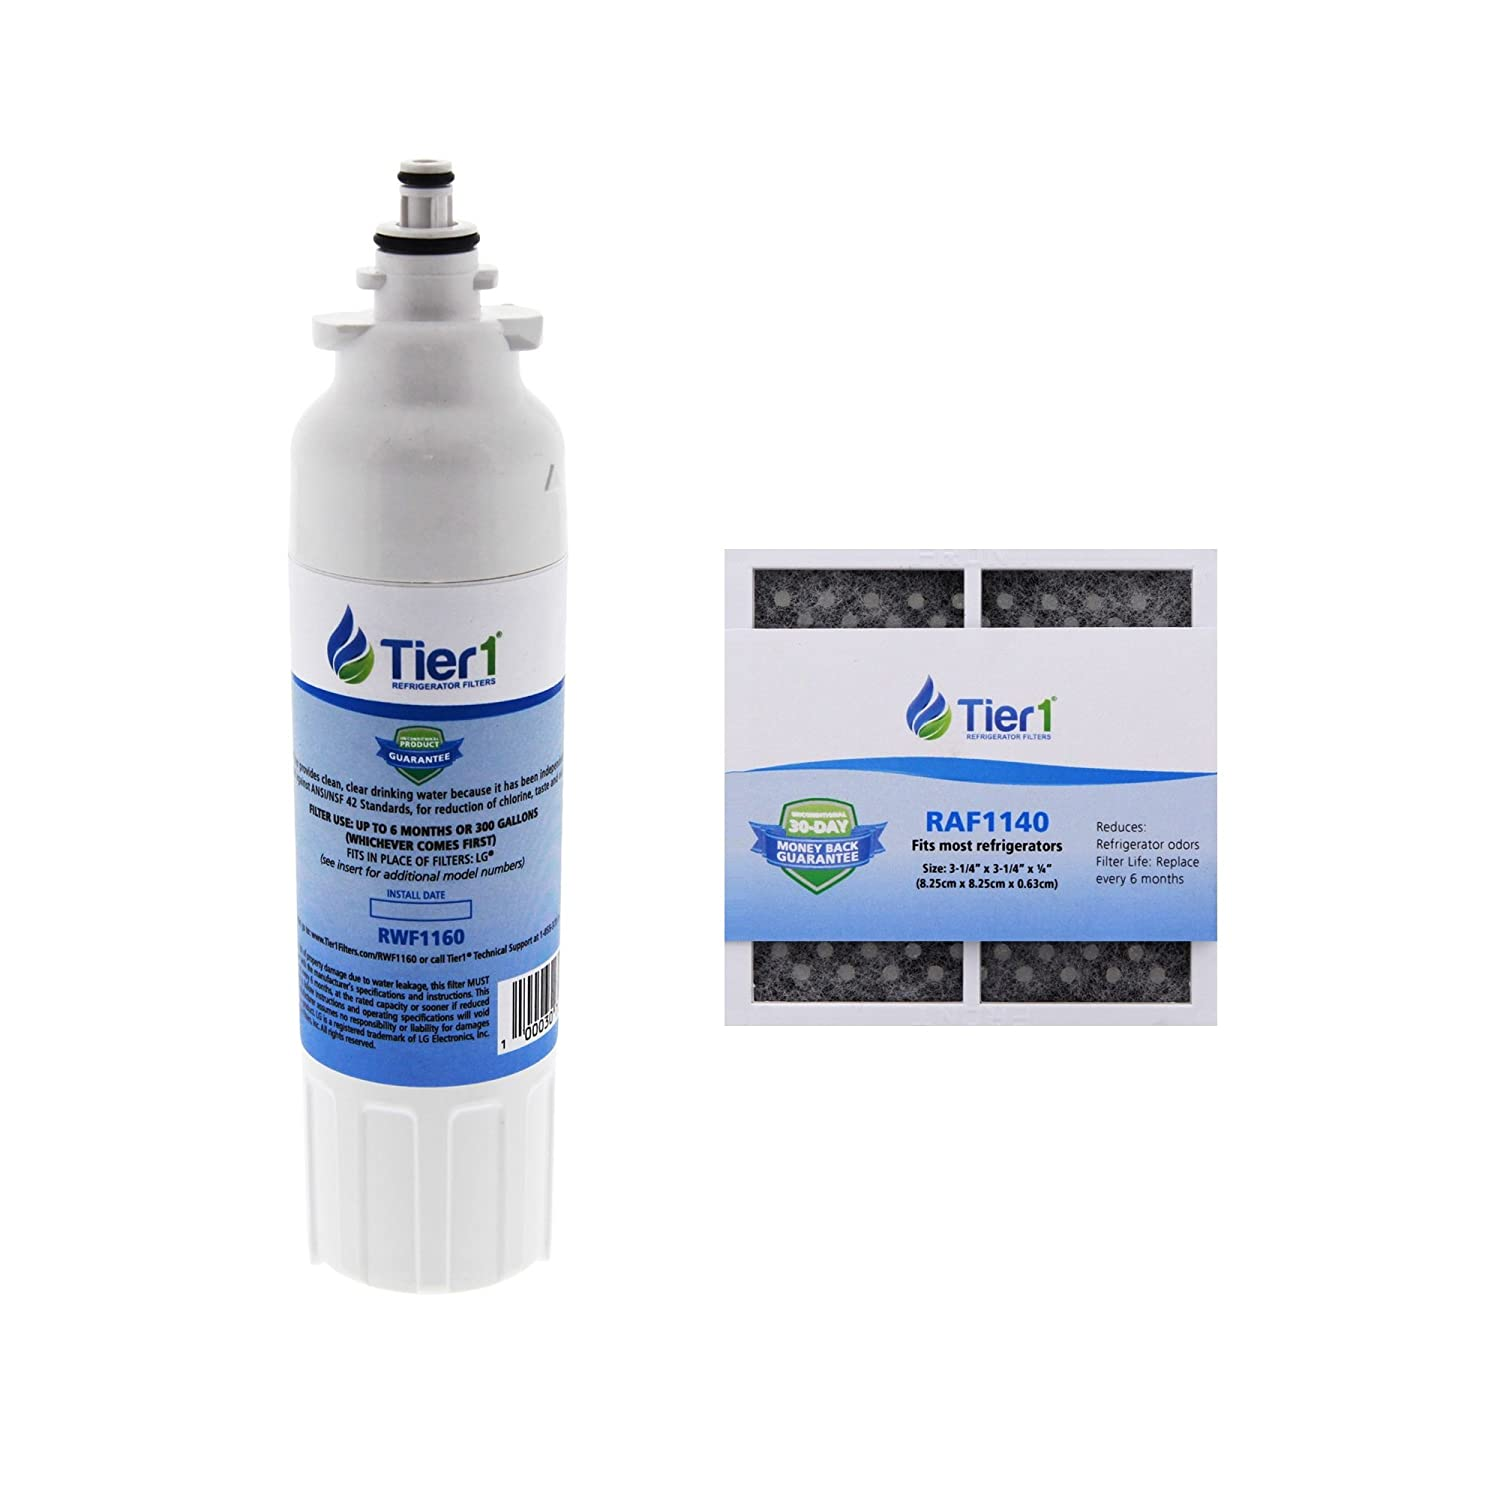 Tier1 Replacement for LG LT800P LT120F Comparable Refrigerator Water Filter and Air Filter Combo